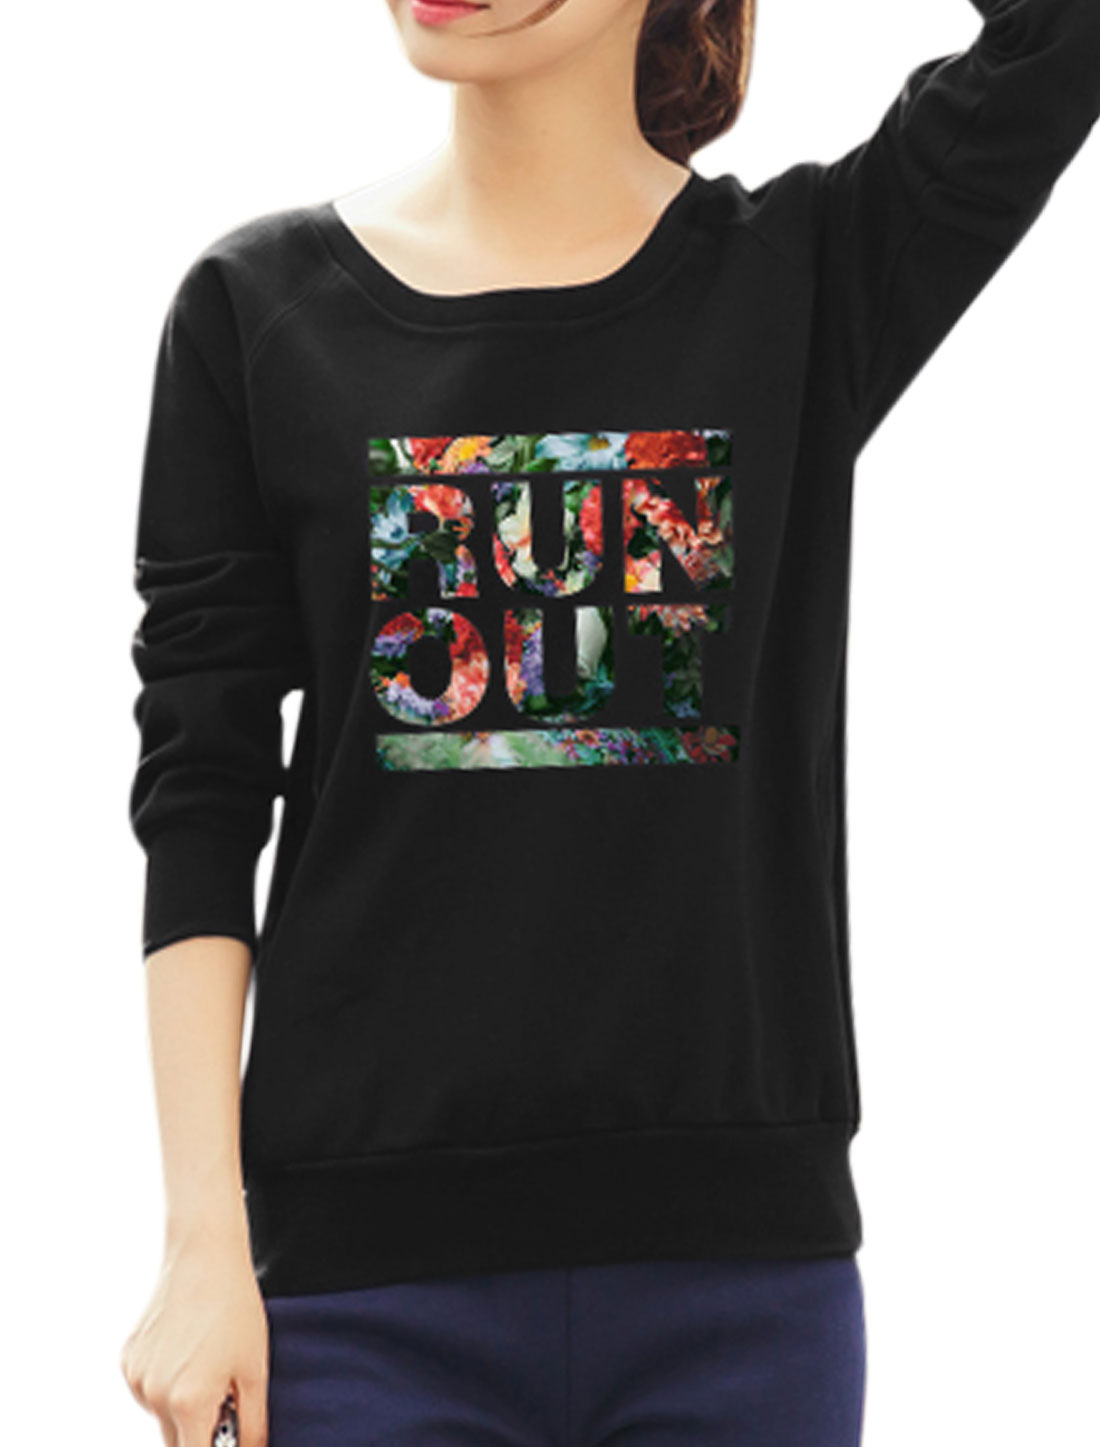 Women Raglan Sleeves Slant Pockets Floral Letters Sweatshirt Black S